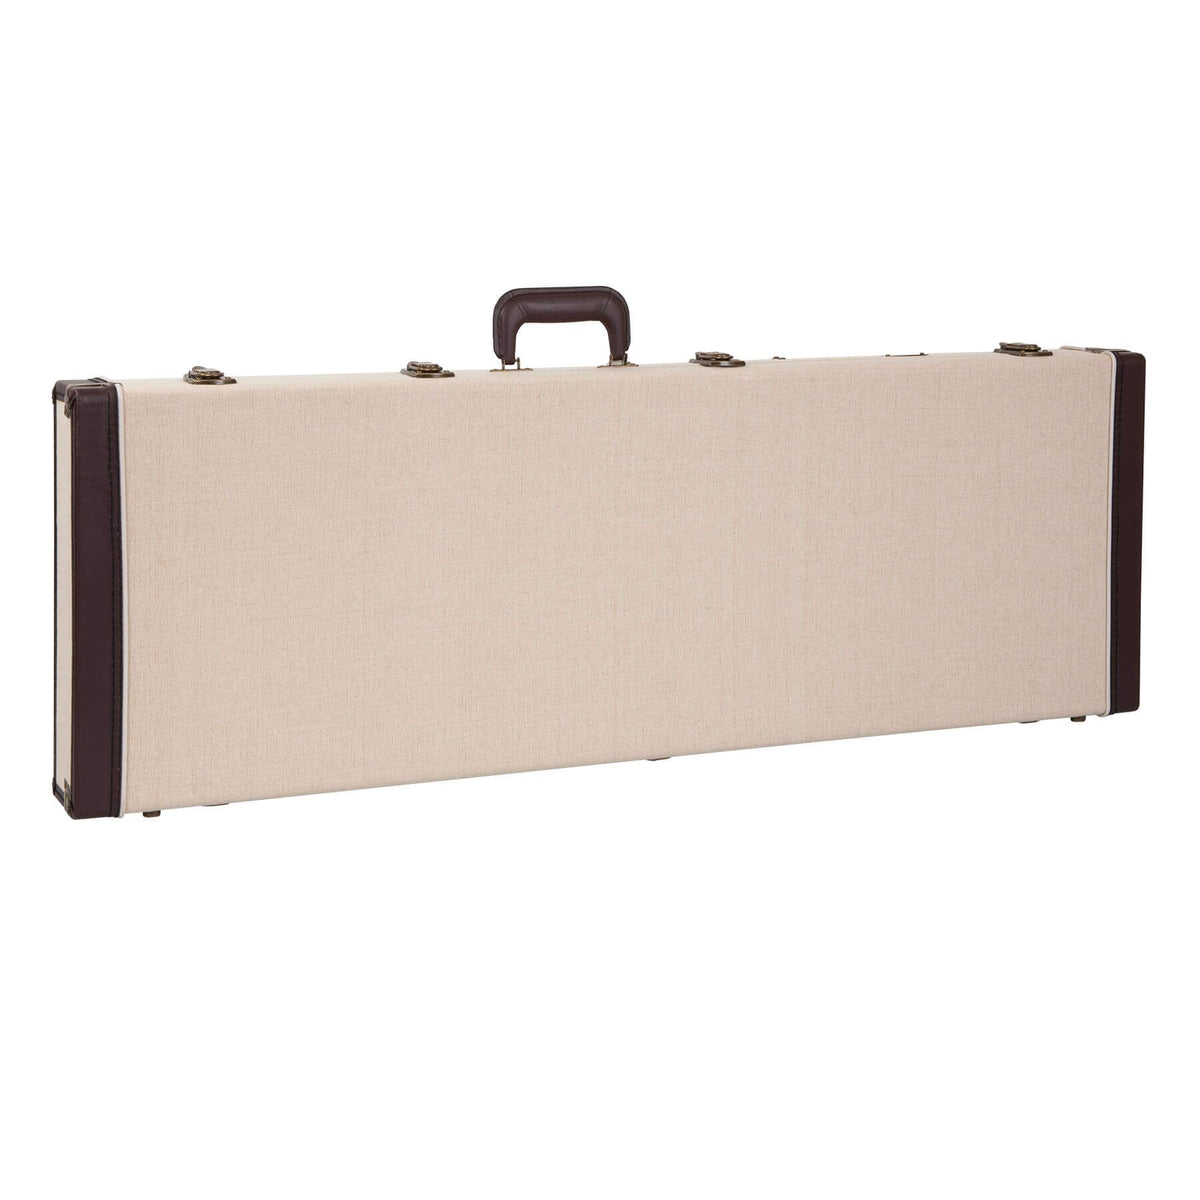 Gator Cases Journeyman Bass Guitar Case for Ibanez ATK Series Electric Bass Guitars